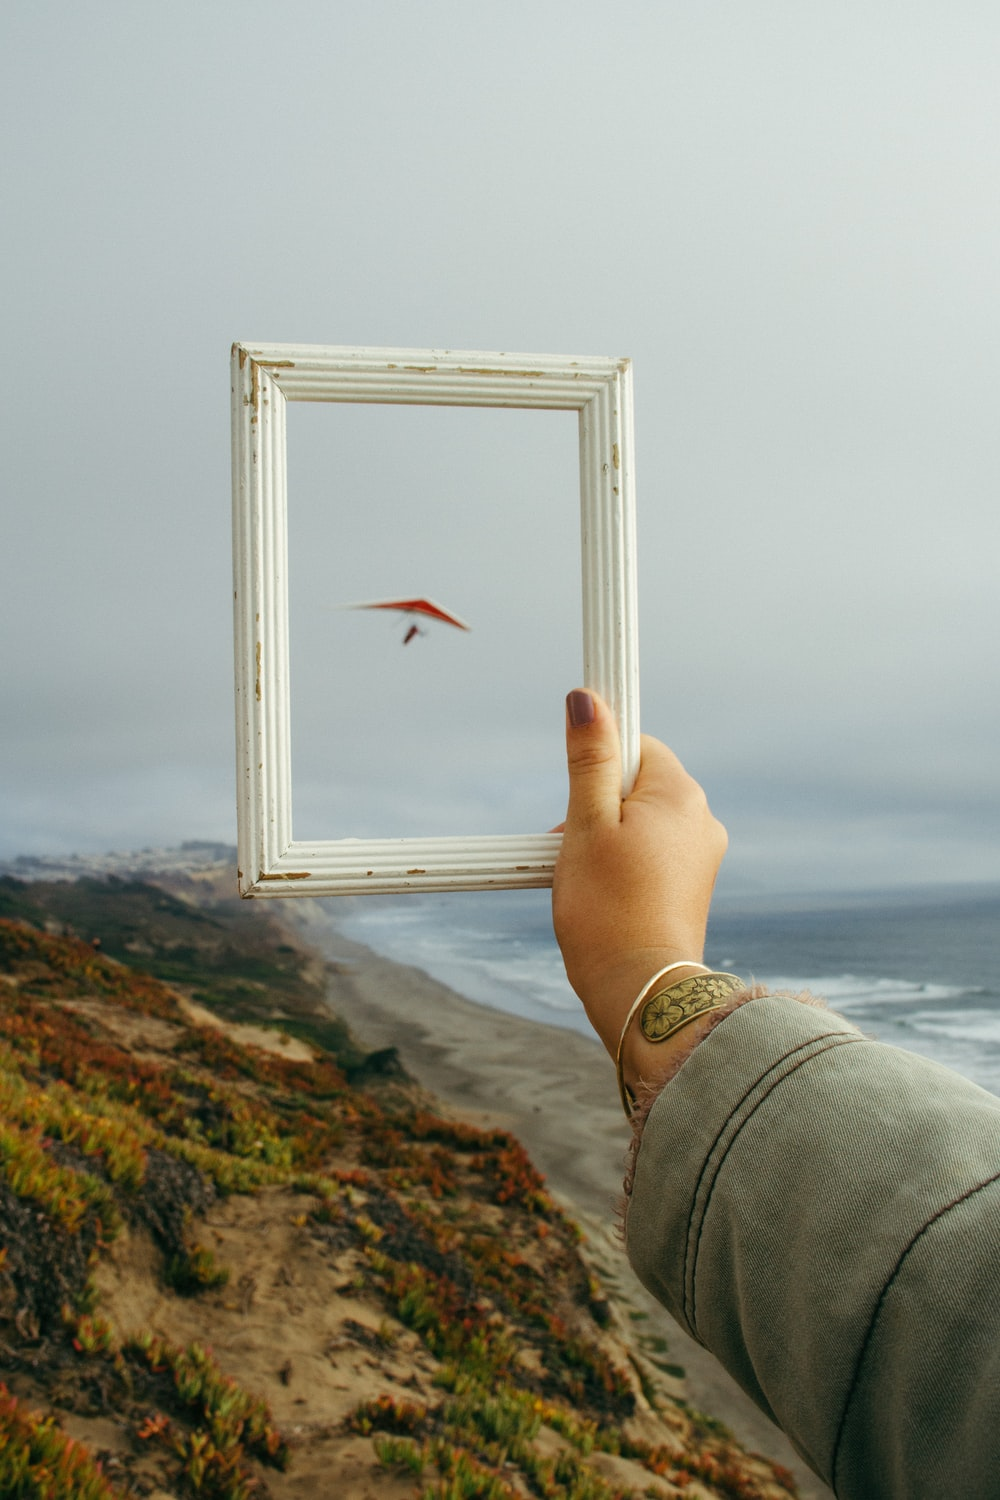 person holding rectangular white photo frame standing on rock formation near body of water